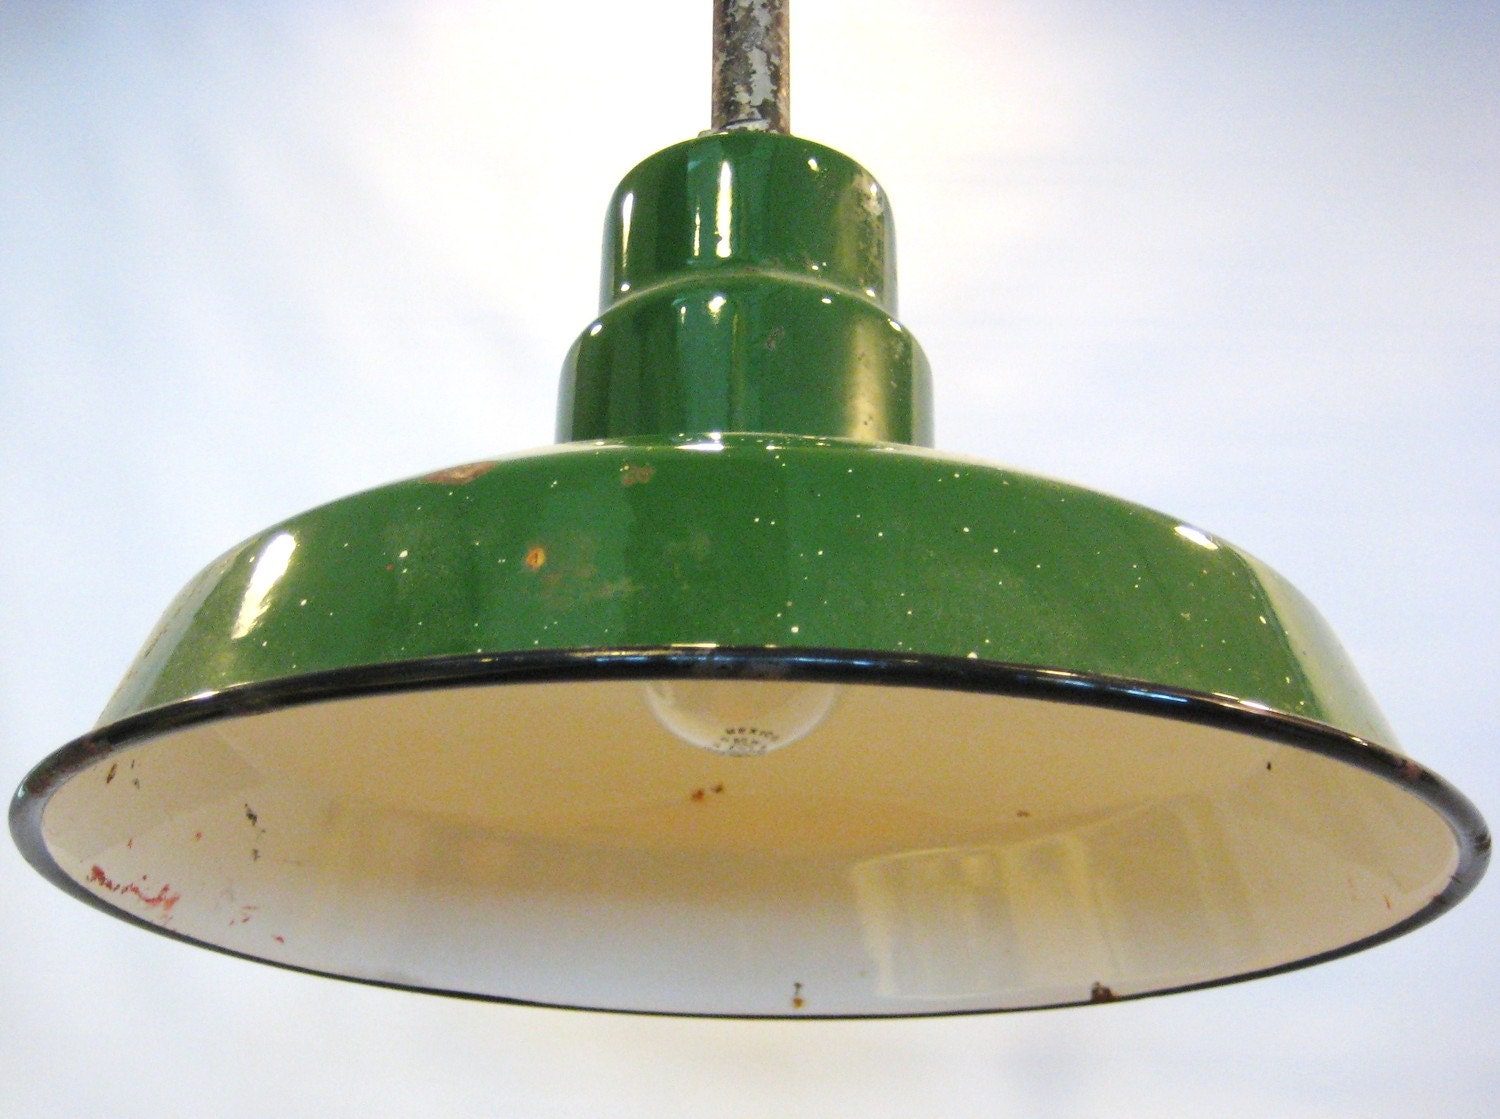 Green Enamel Wall Lights : Antique Green Enamel Metal Hanging Light Fixture by Barneche